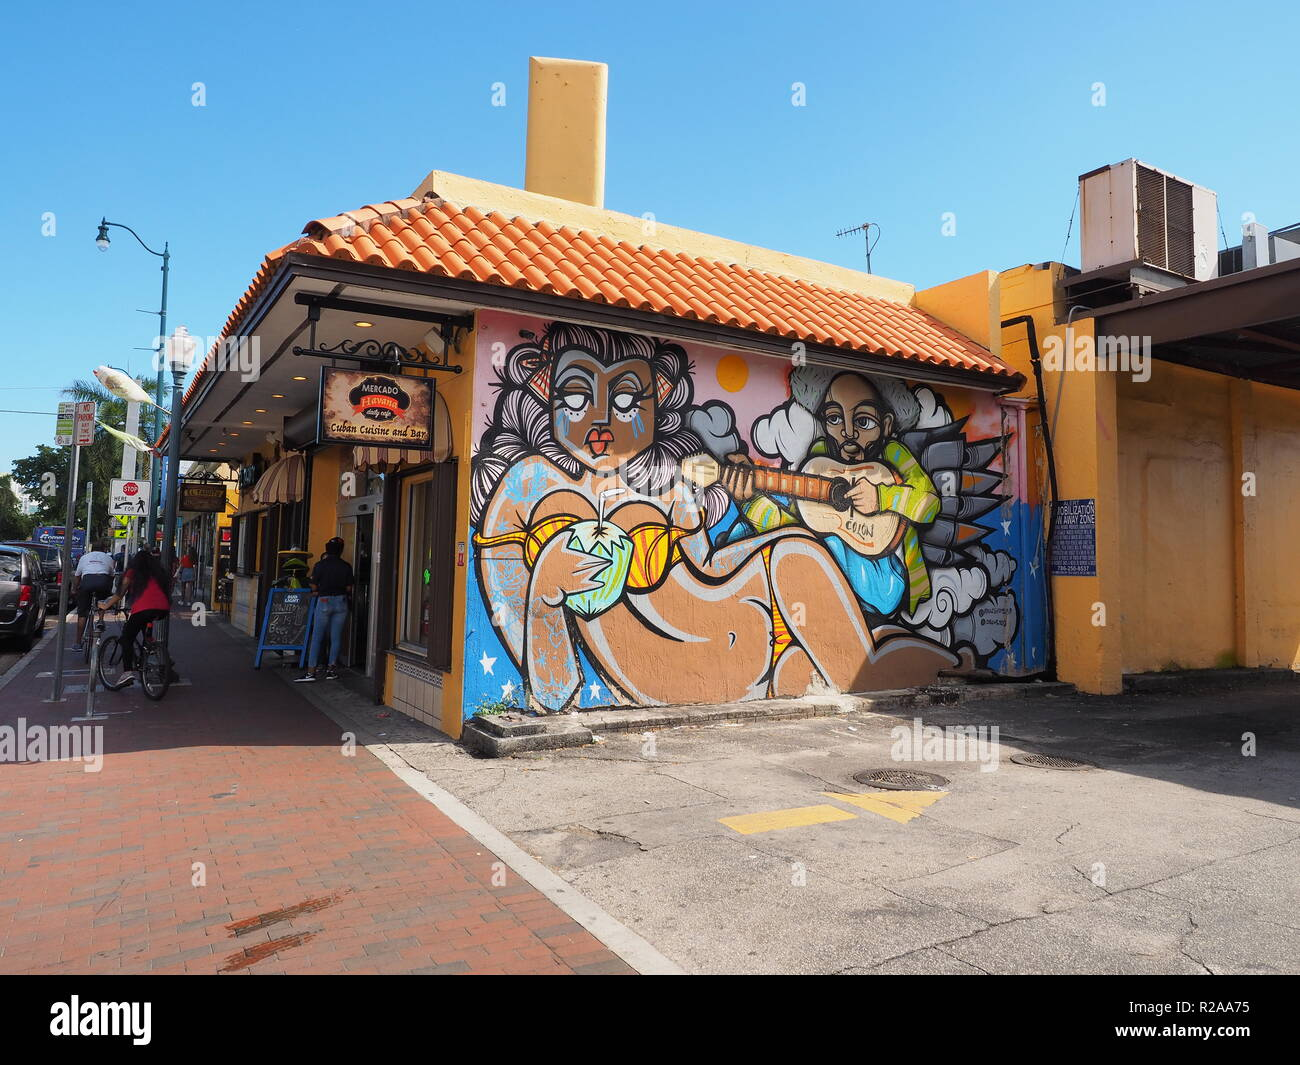 Miami, Florida 10-21-2018 Street scene on Calle Ocho - Eigth Street - in Miami's Little Havana. - Stock Image